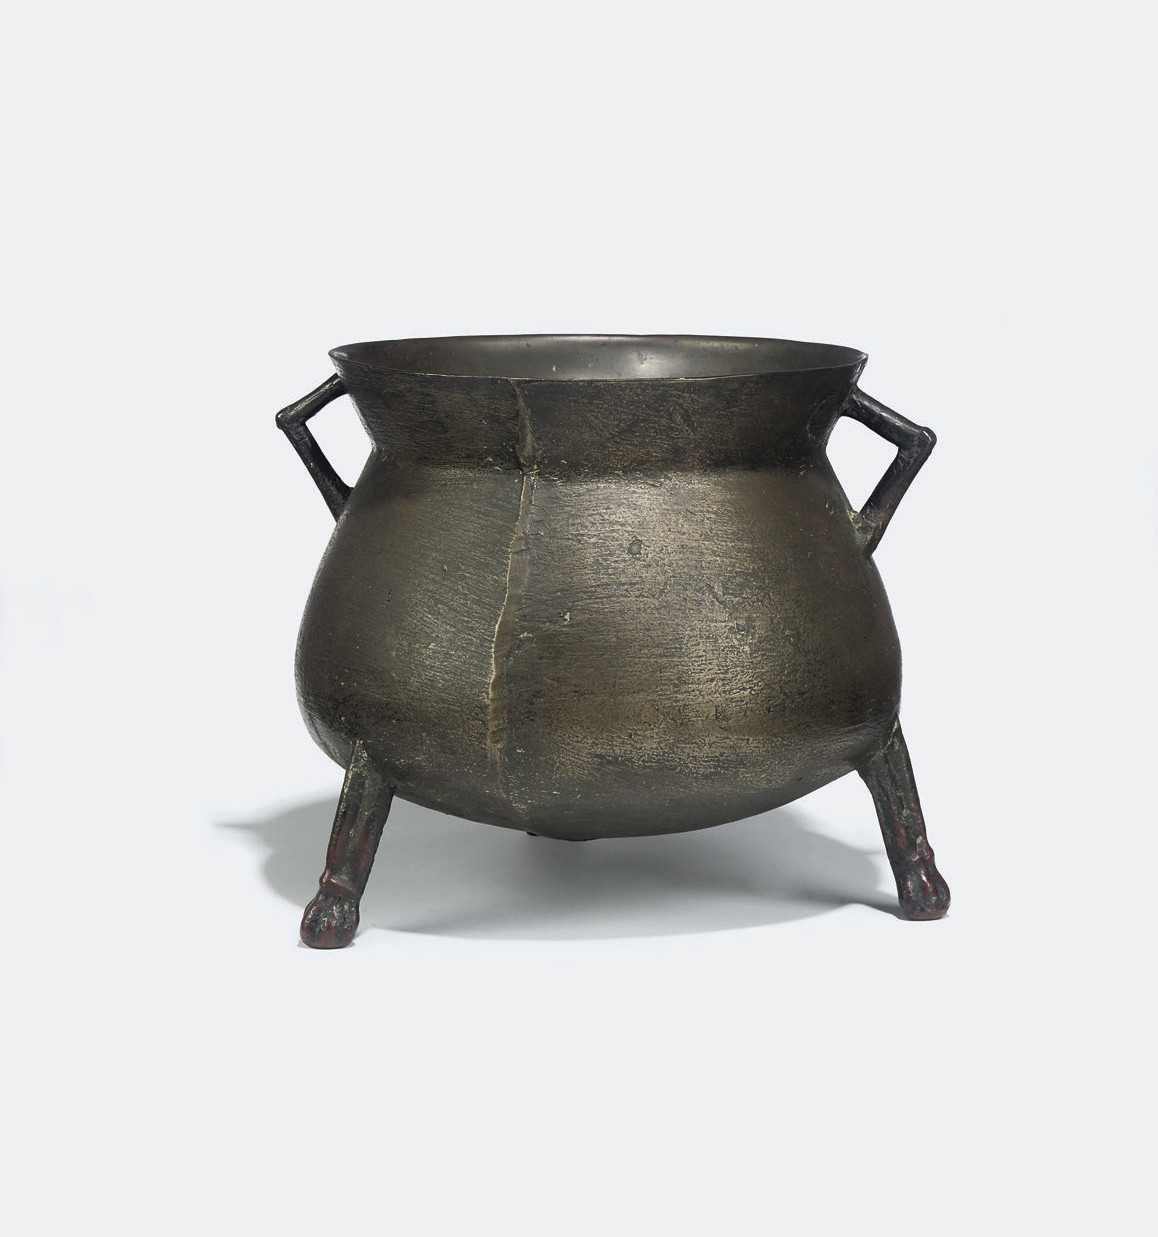 AN ENGLISH BRONZE CAULDRON